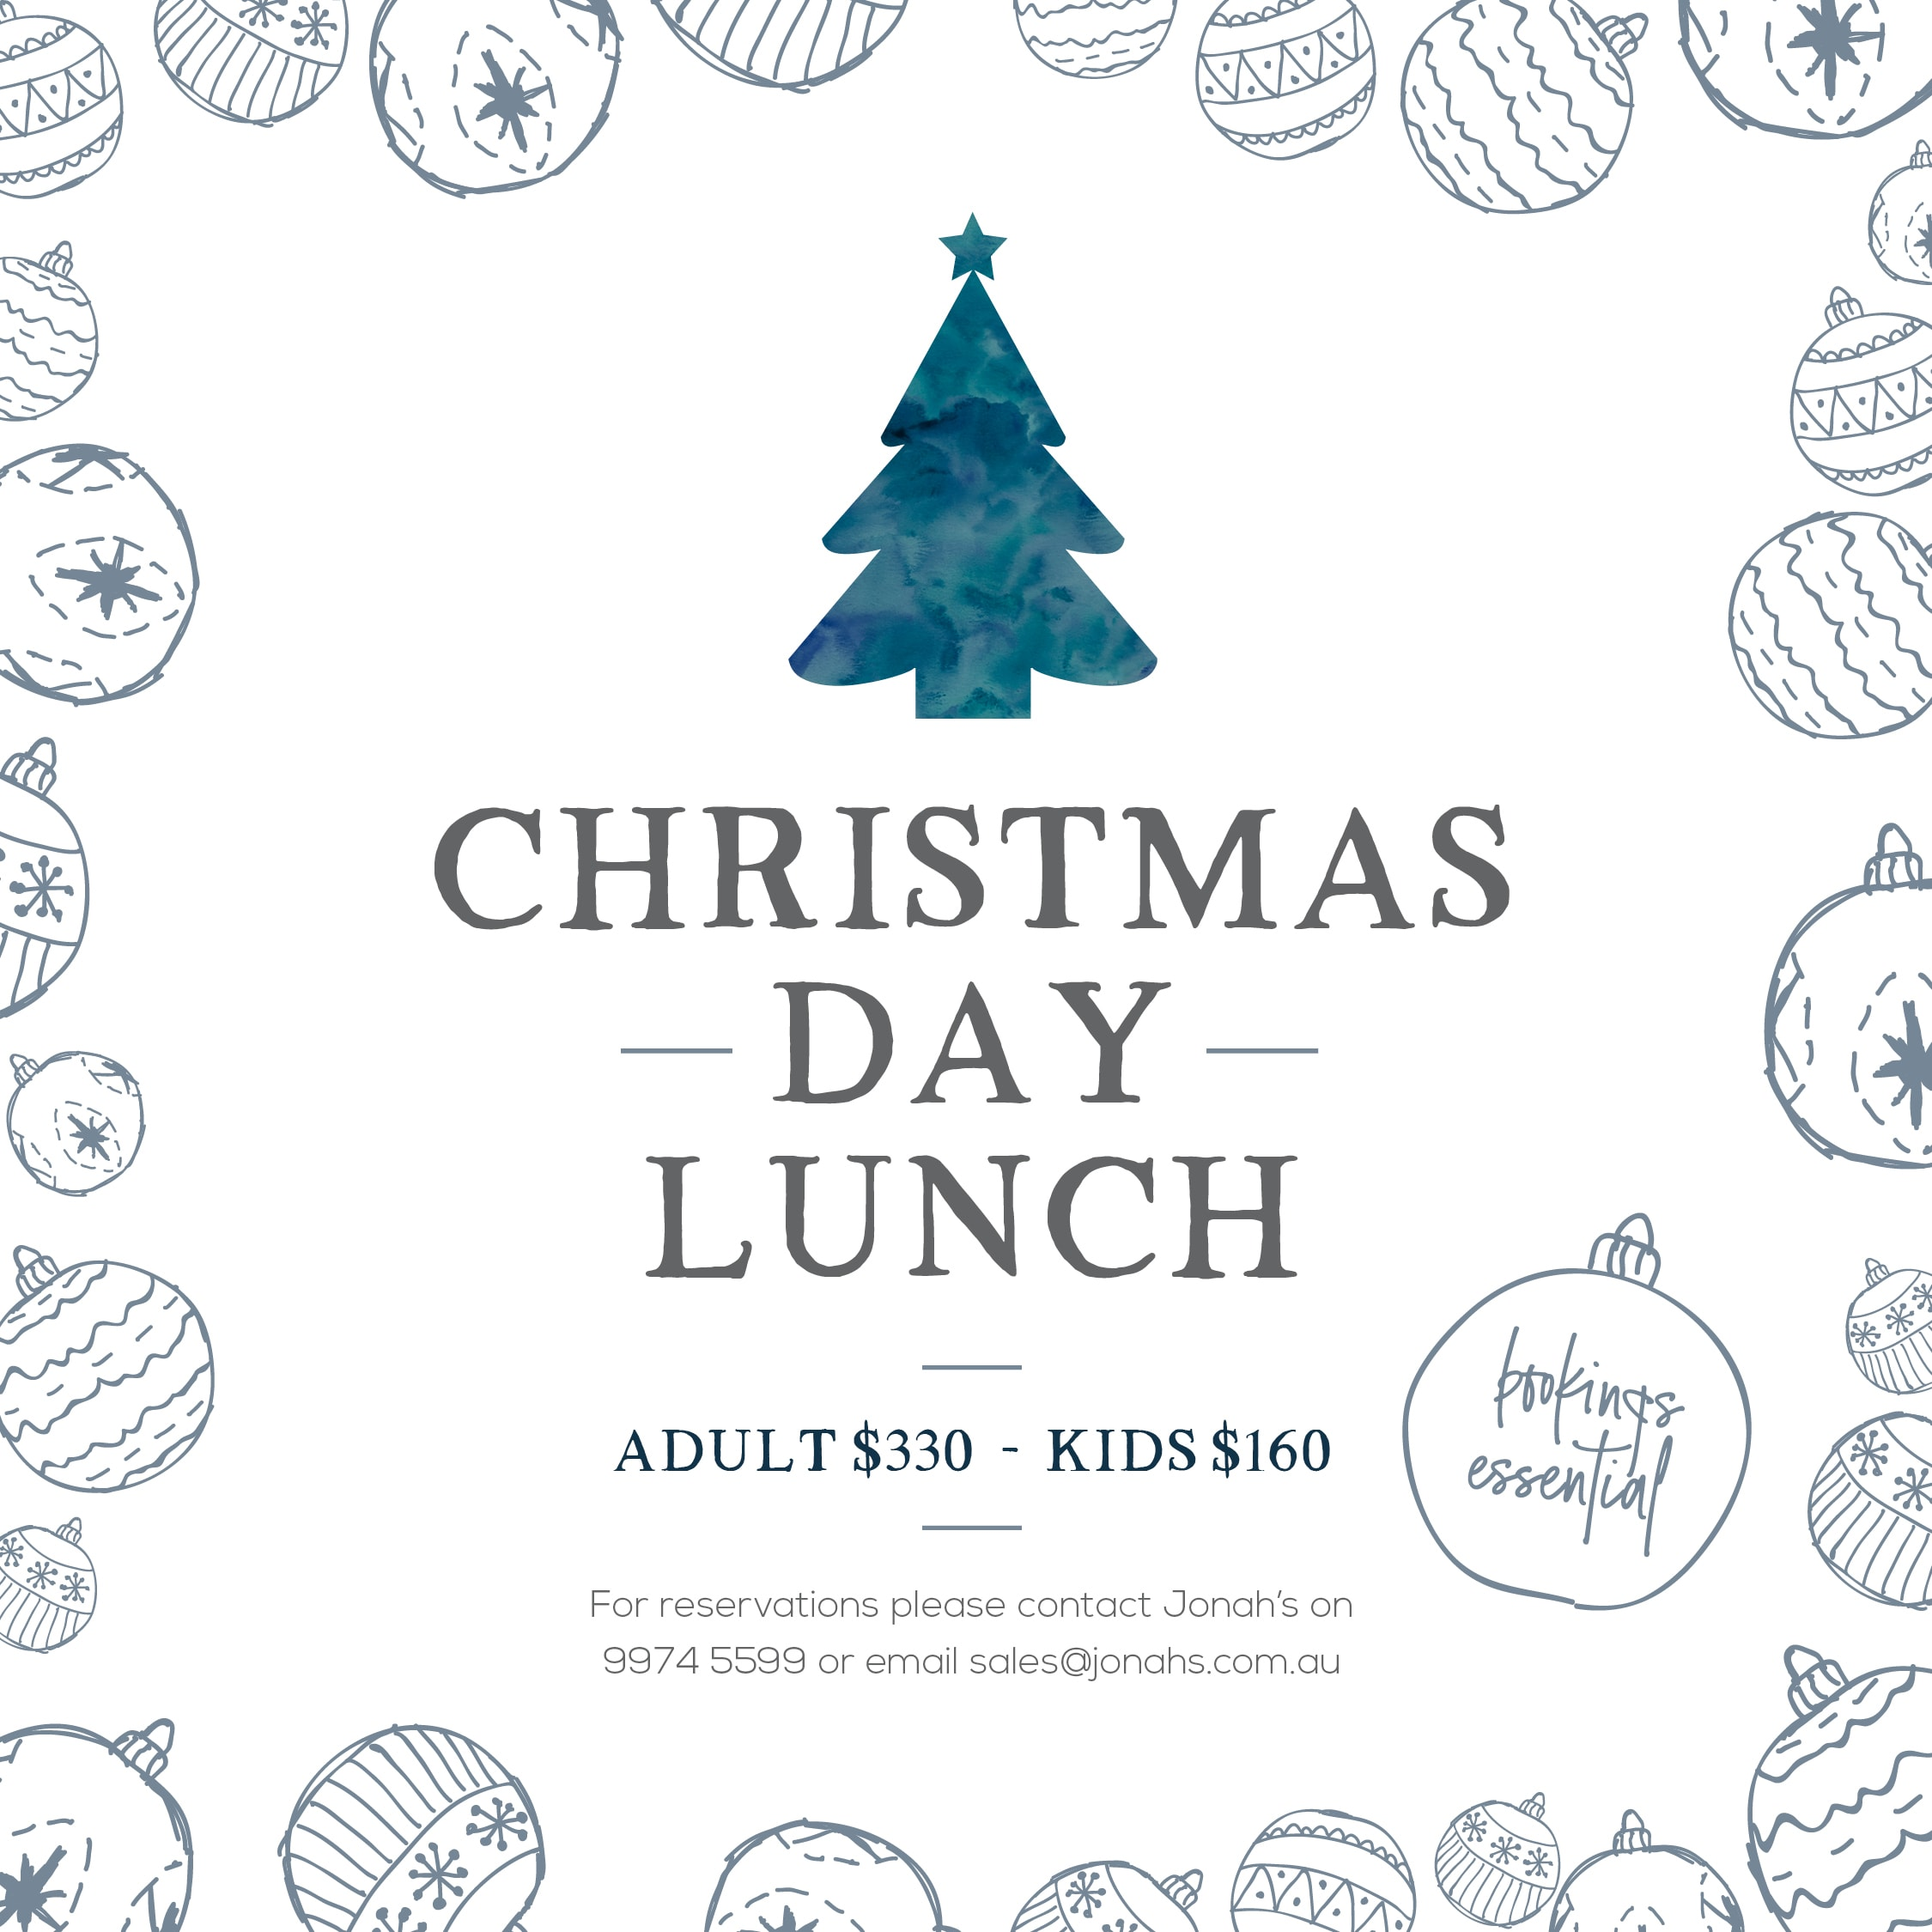 Jonah's, Jonahs, Whale Beach, Christmas, Christmas Lunch, Christmas Day Lunch 2018, Things to do for Christmas, Sydney, Northern Beaches, What's On, Palm Beach